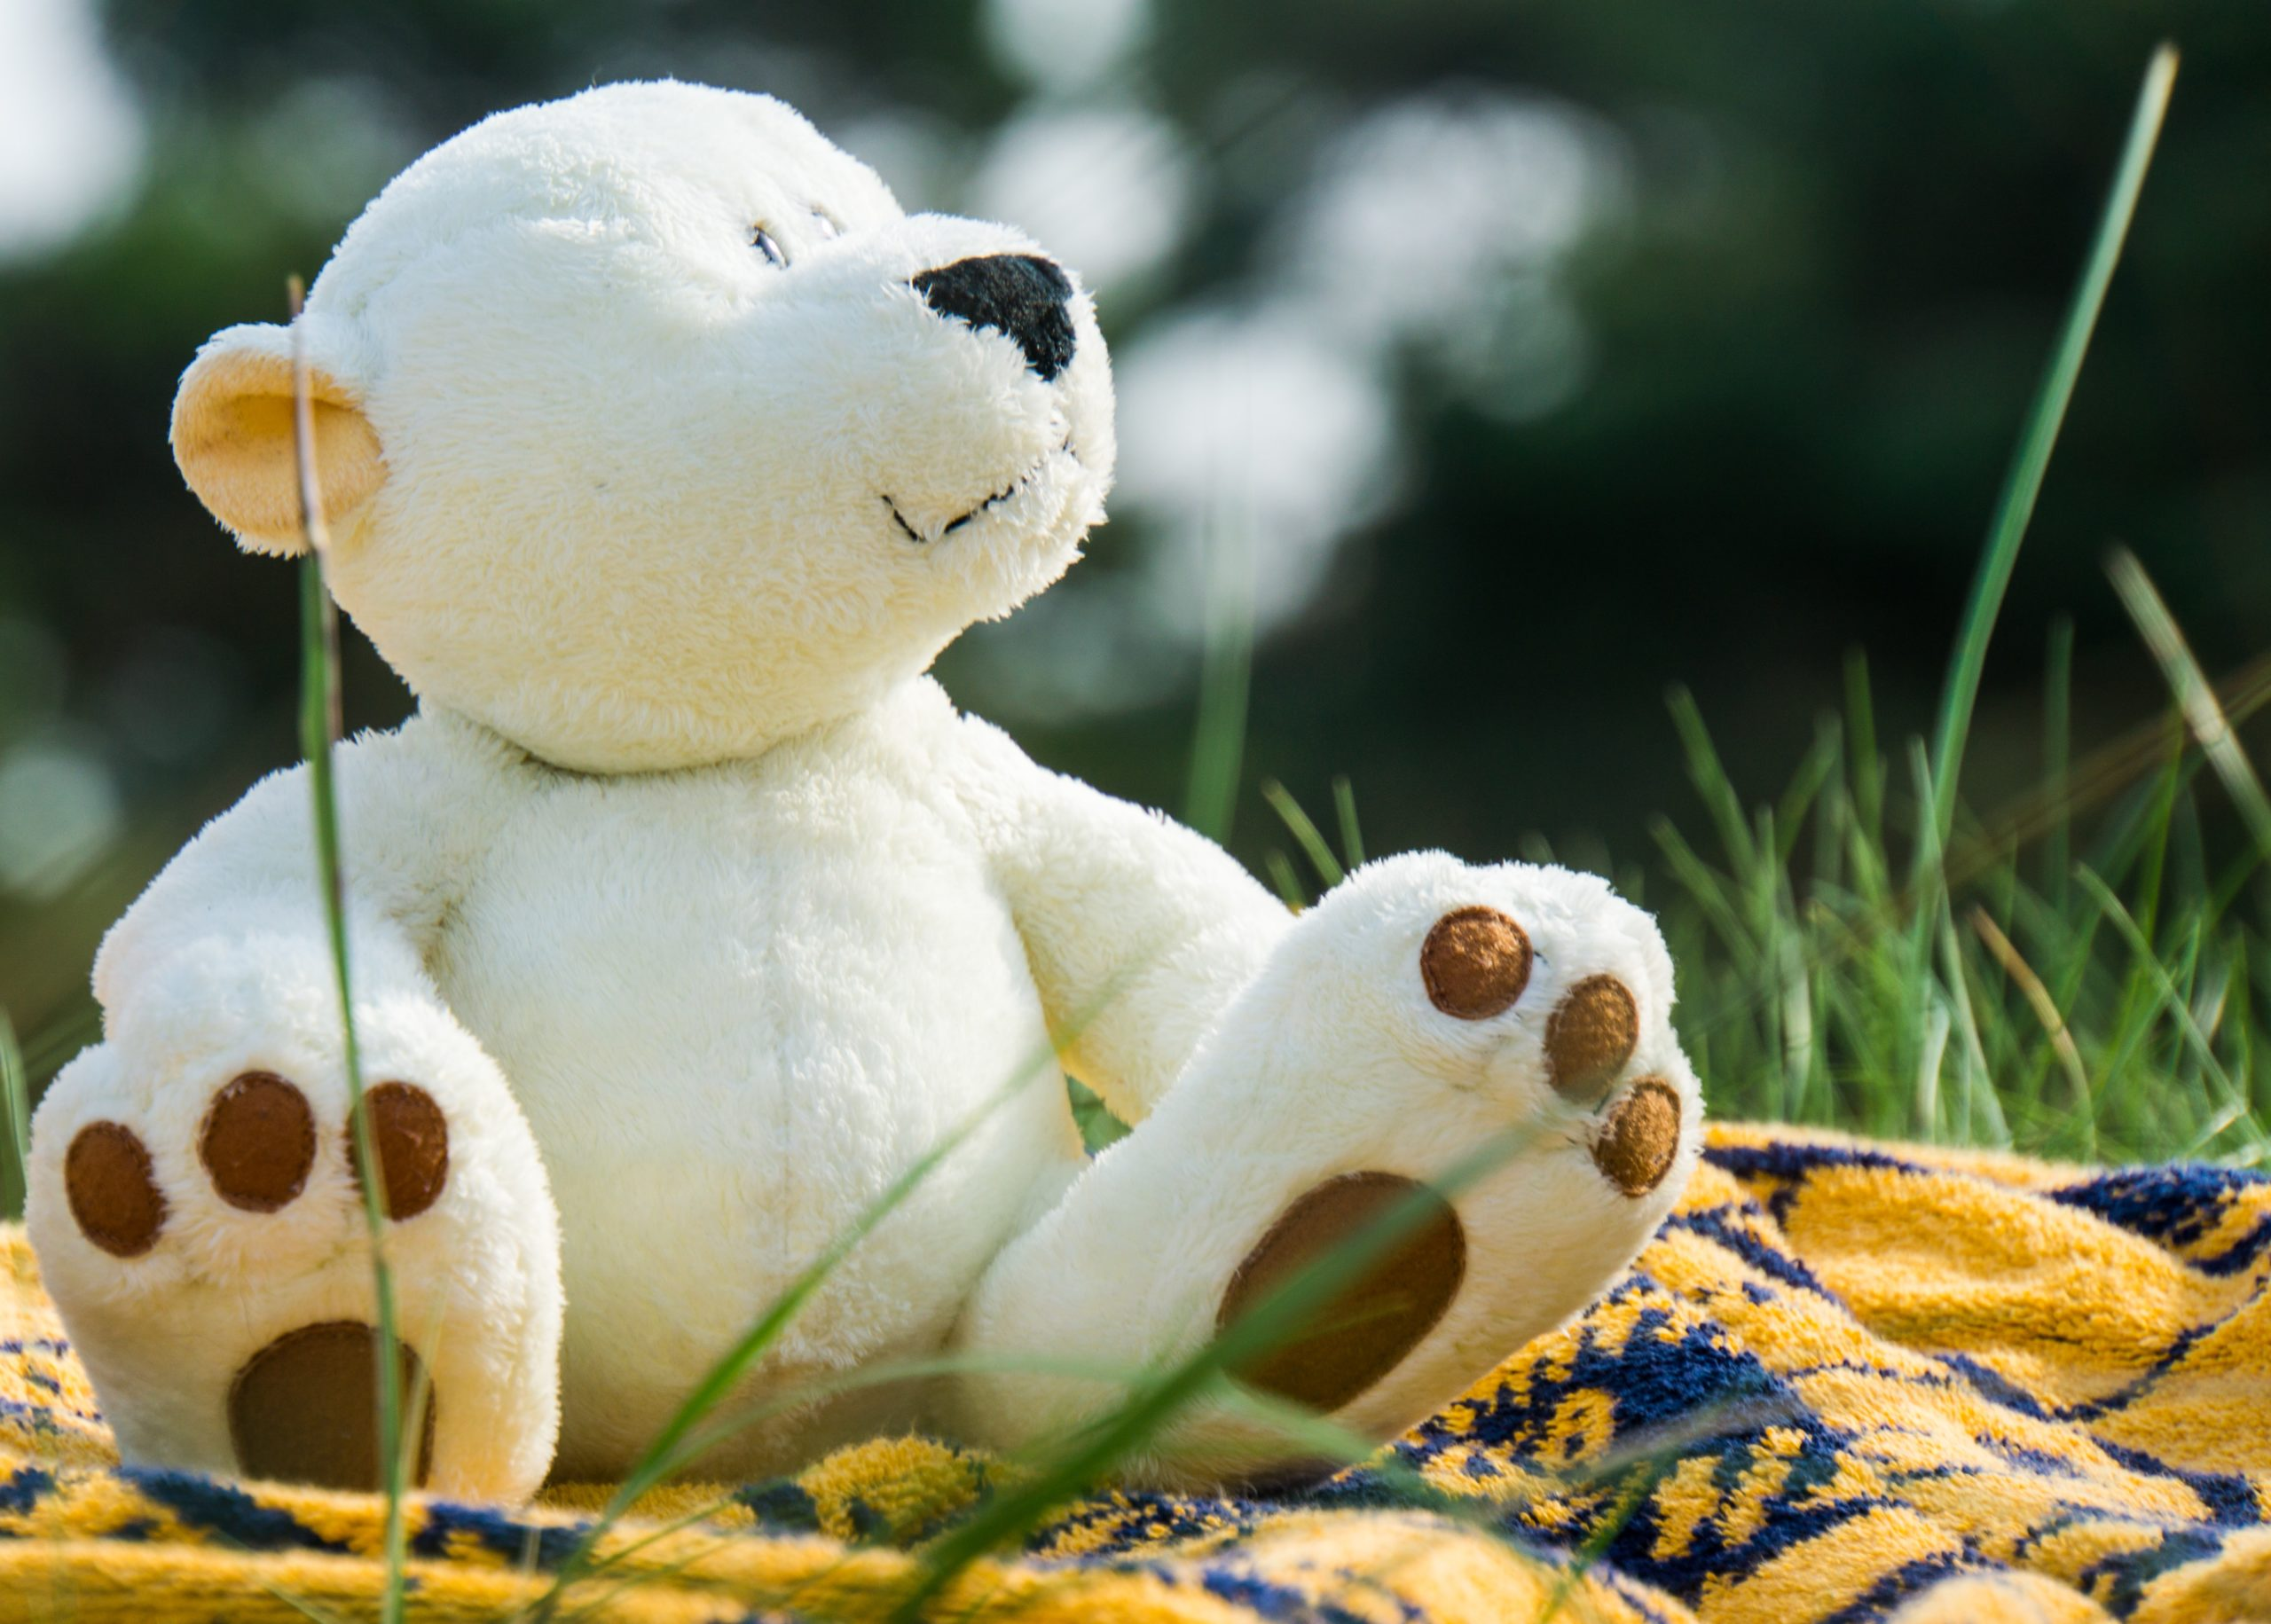 White teddy bear siting on a yellow and blue blanket on grass looking up to the right